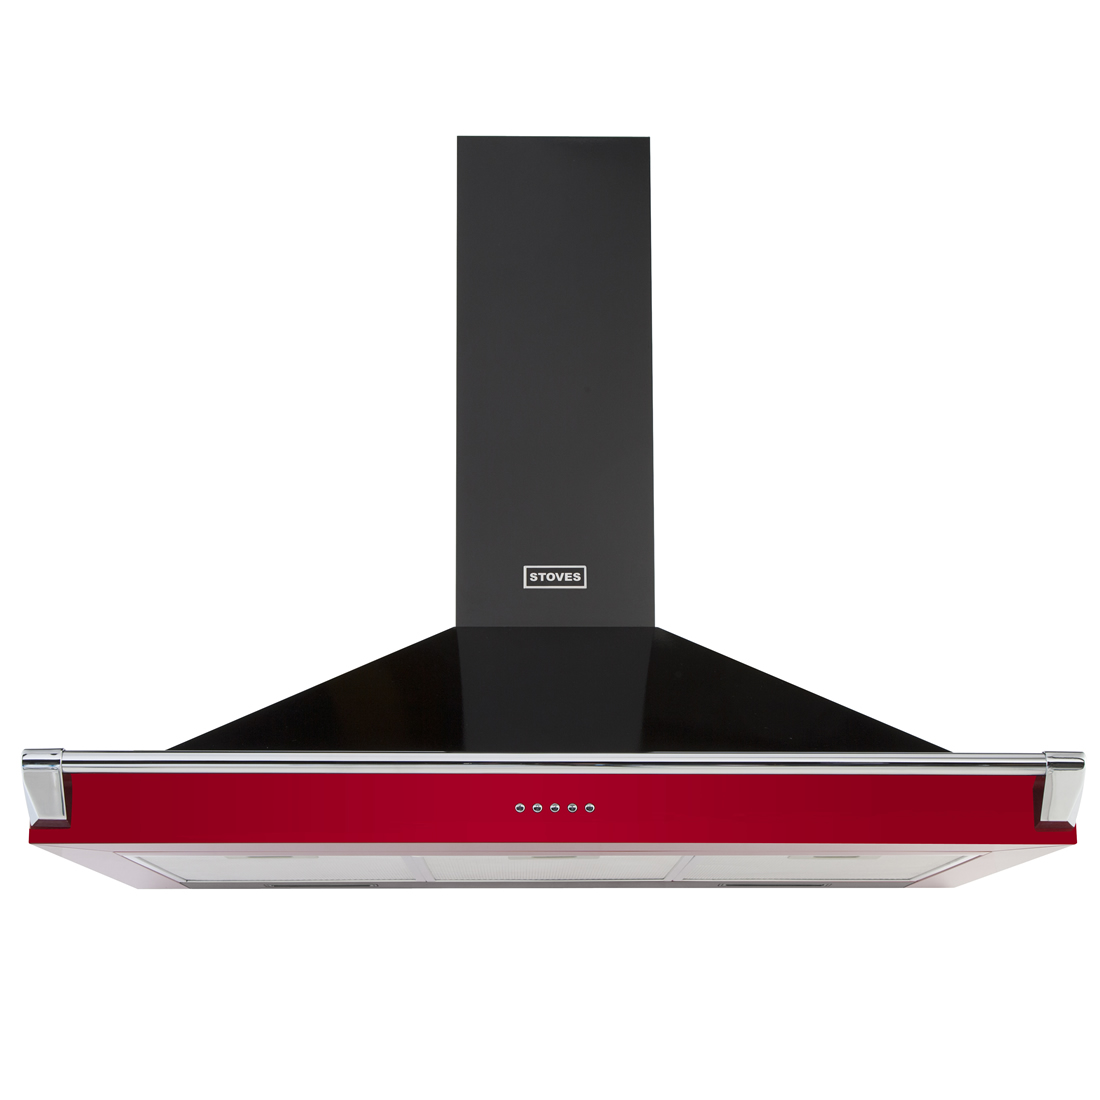 Image of 1000mm Chimney Cooker Hood with Rail 3-Speed Fan